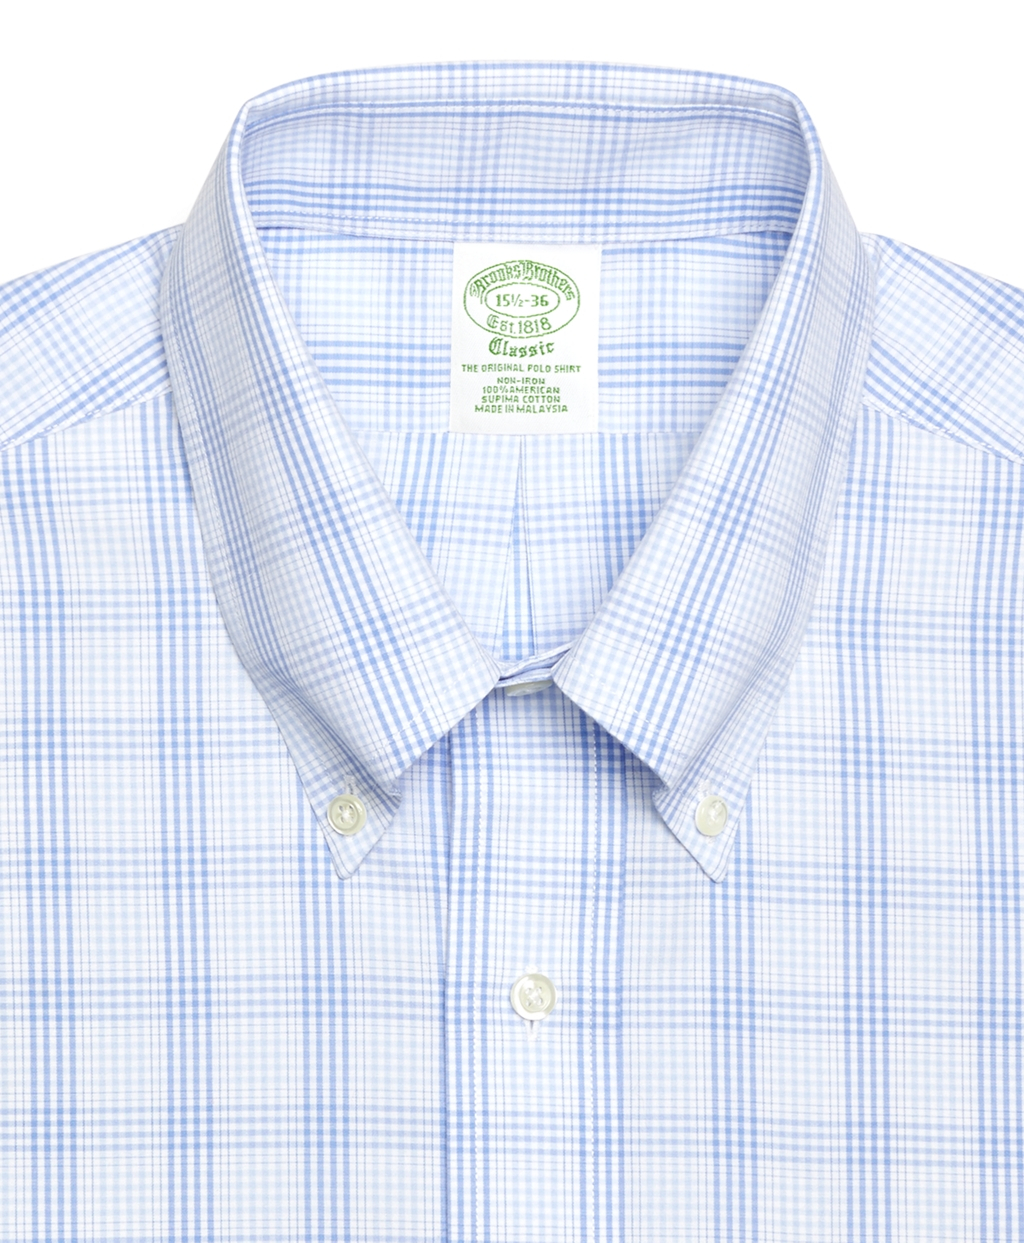 Brooks brothers check dress shirt in blue for men light for Brooks brothers dress shirt fit guide